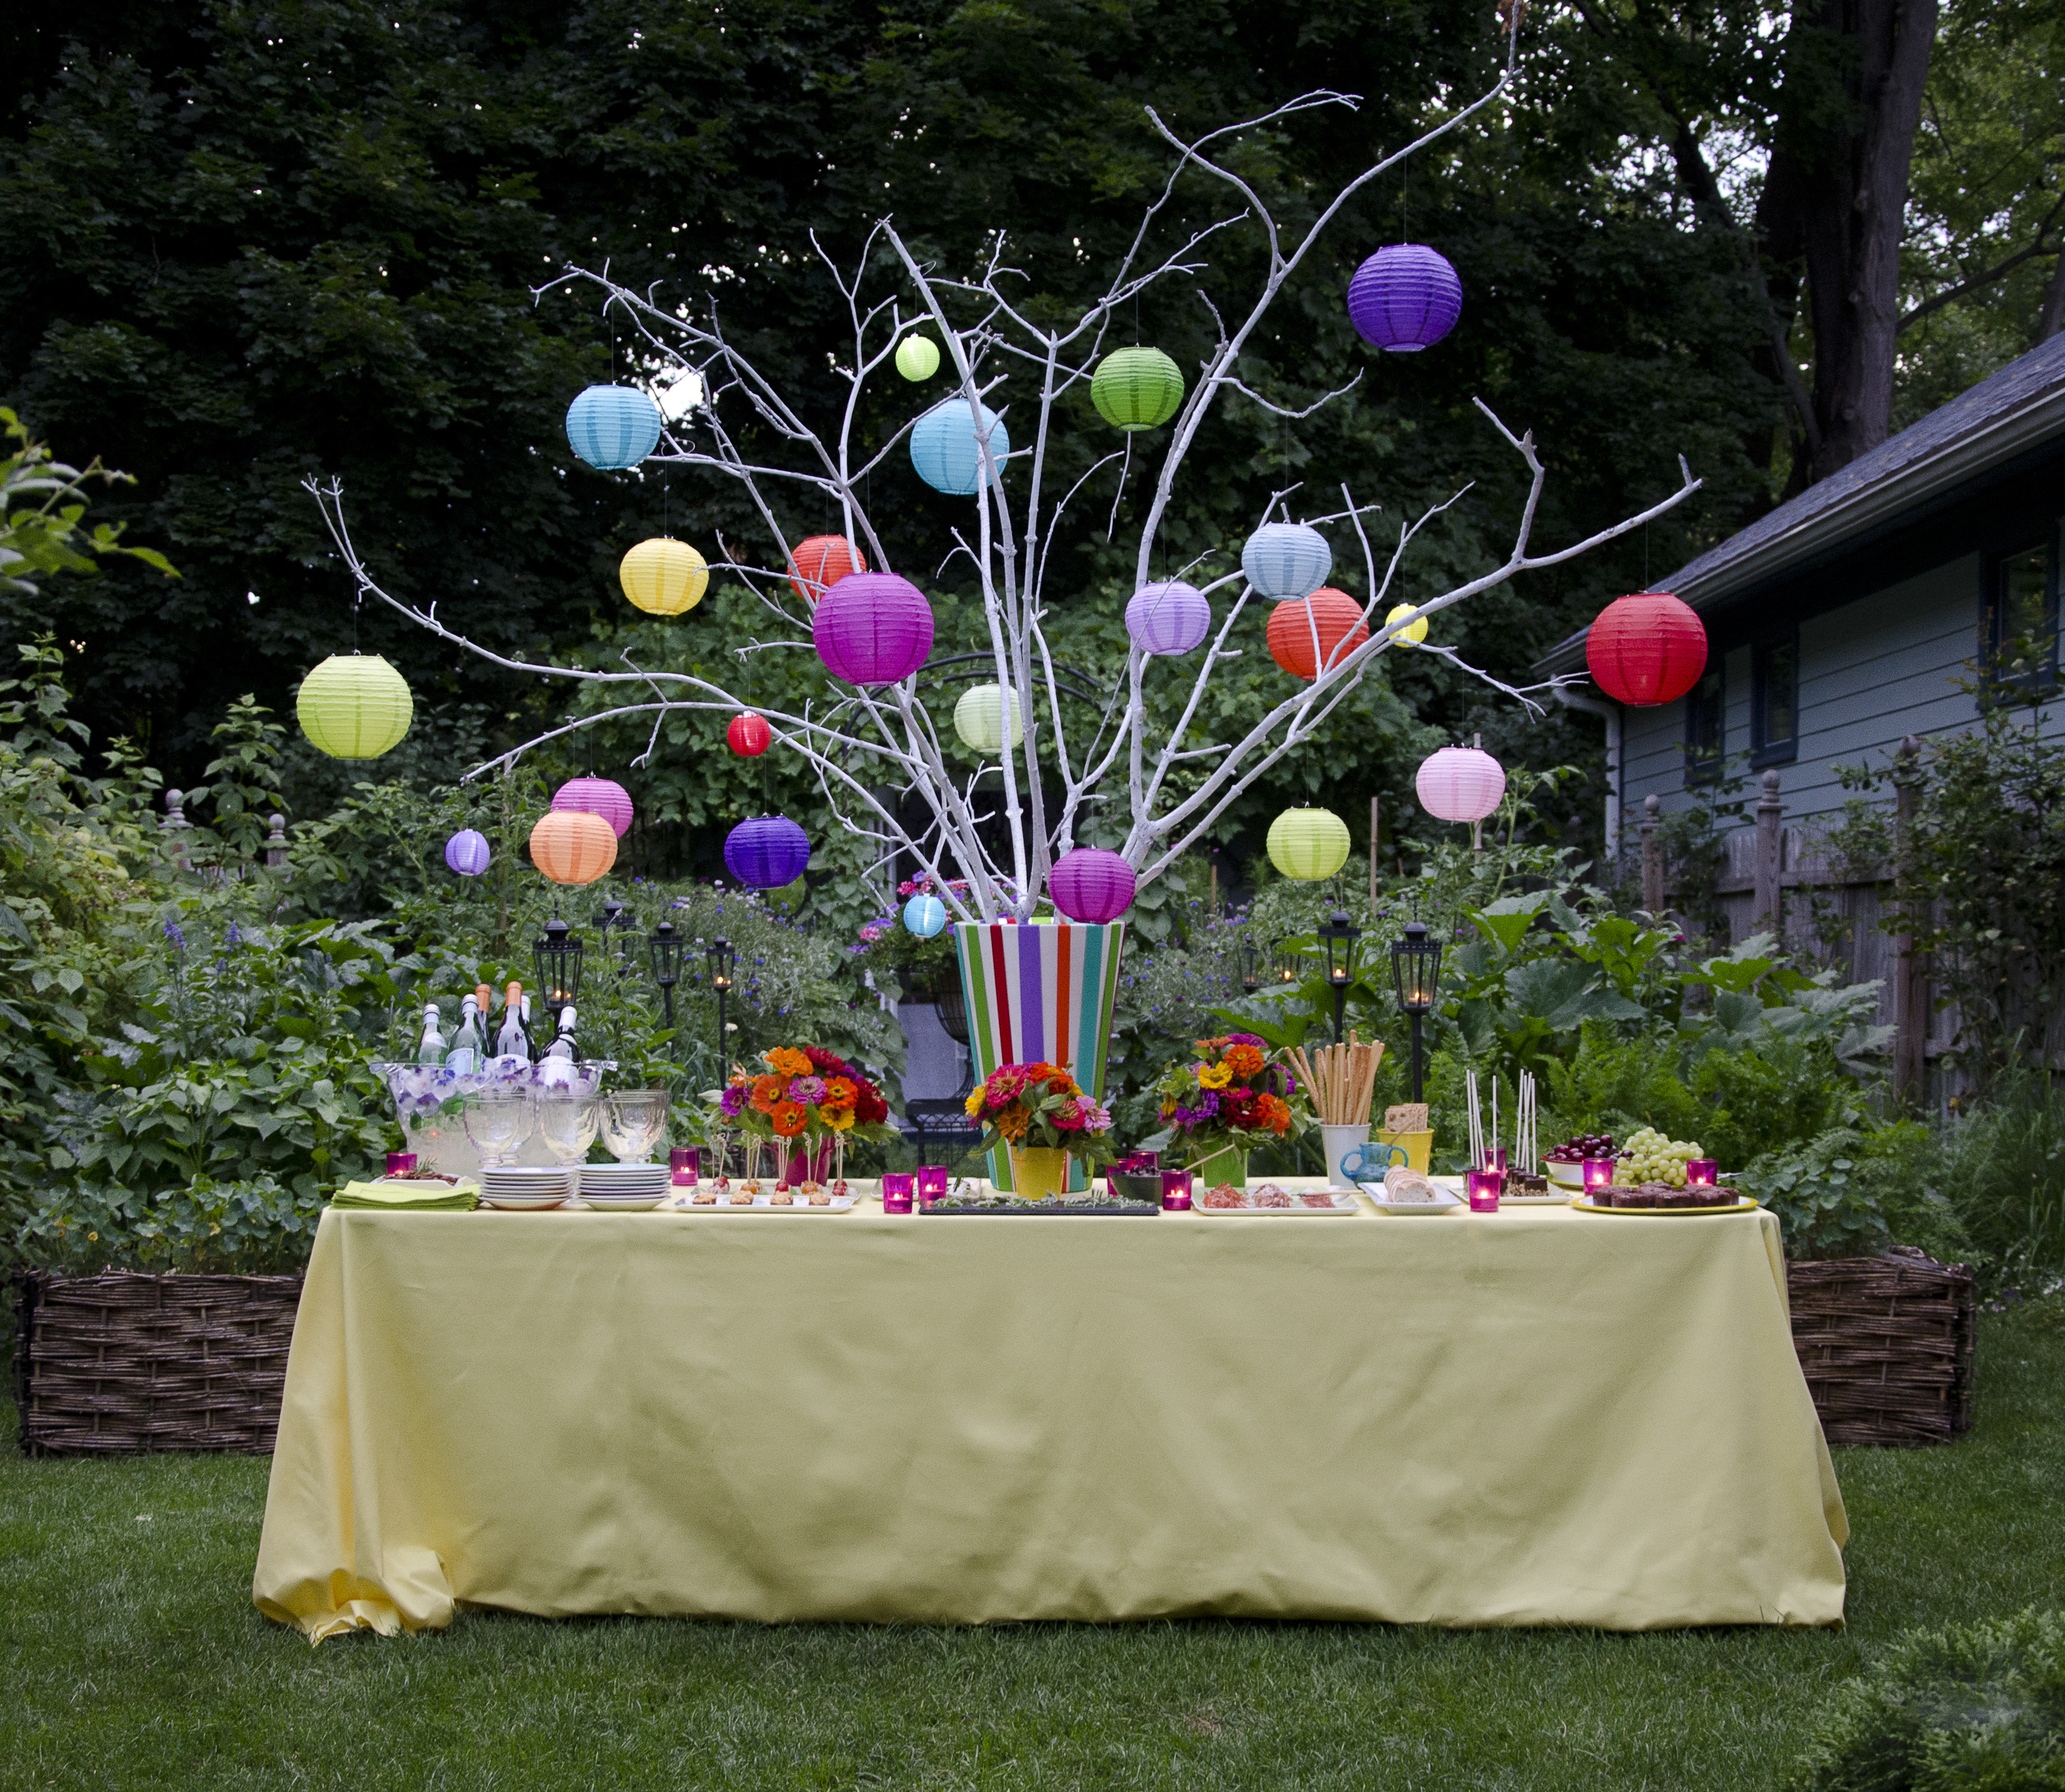 Easy On The Eye Charming And Cozy Outdoor Decorating: NEW KDHamptons Featured Garden Book: AN INVITATION TO THE